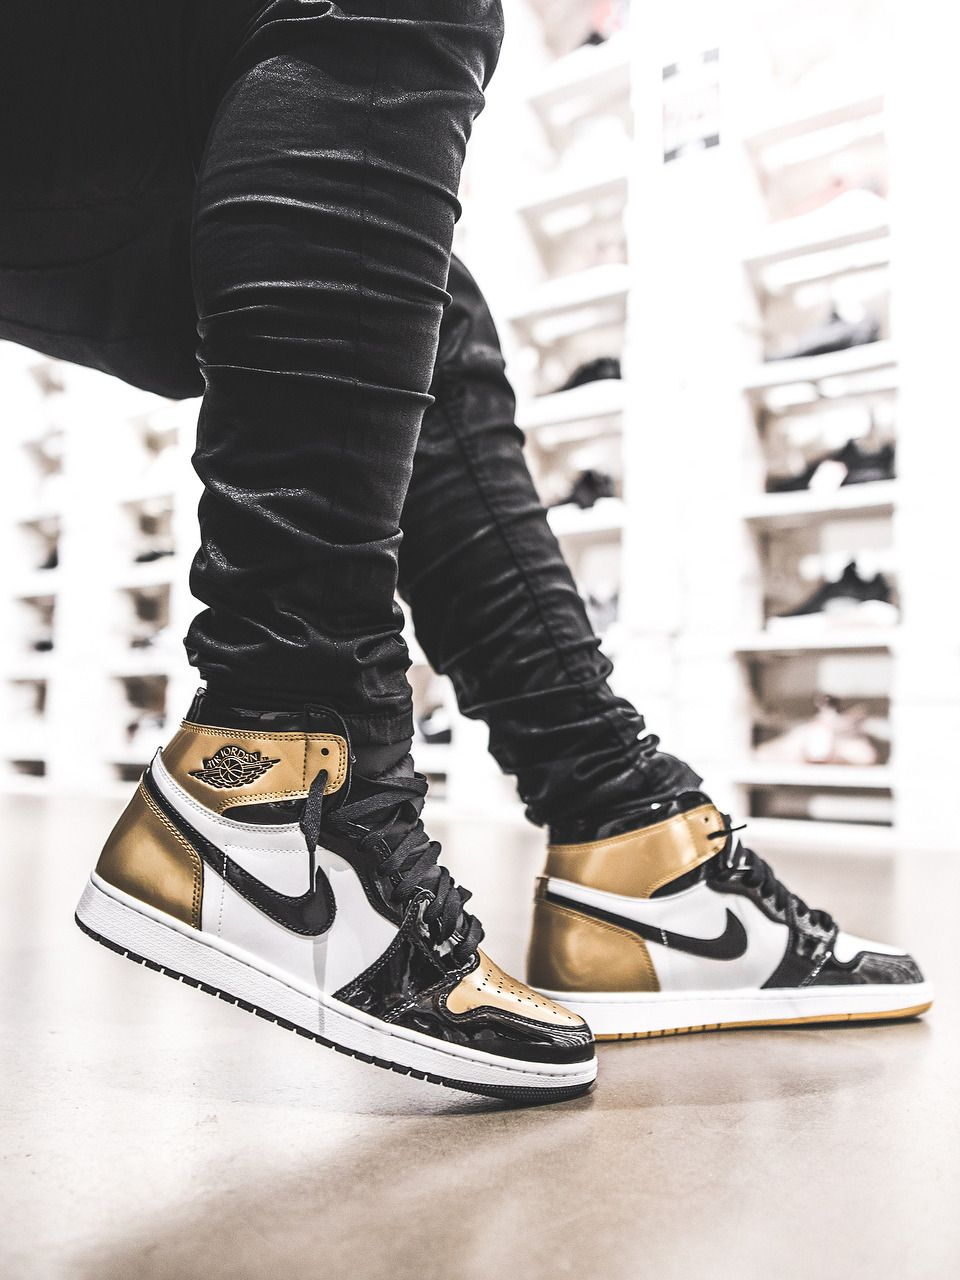 ff73afcf72c2 Nike Air Jordan 1 Retro High OG Gold Top 3 - 2017 (by vivianfrank ...